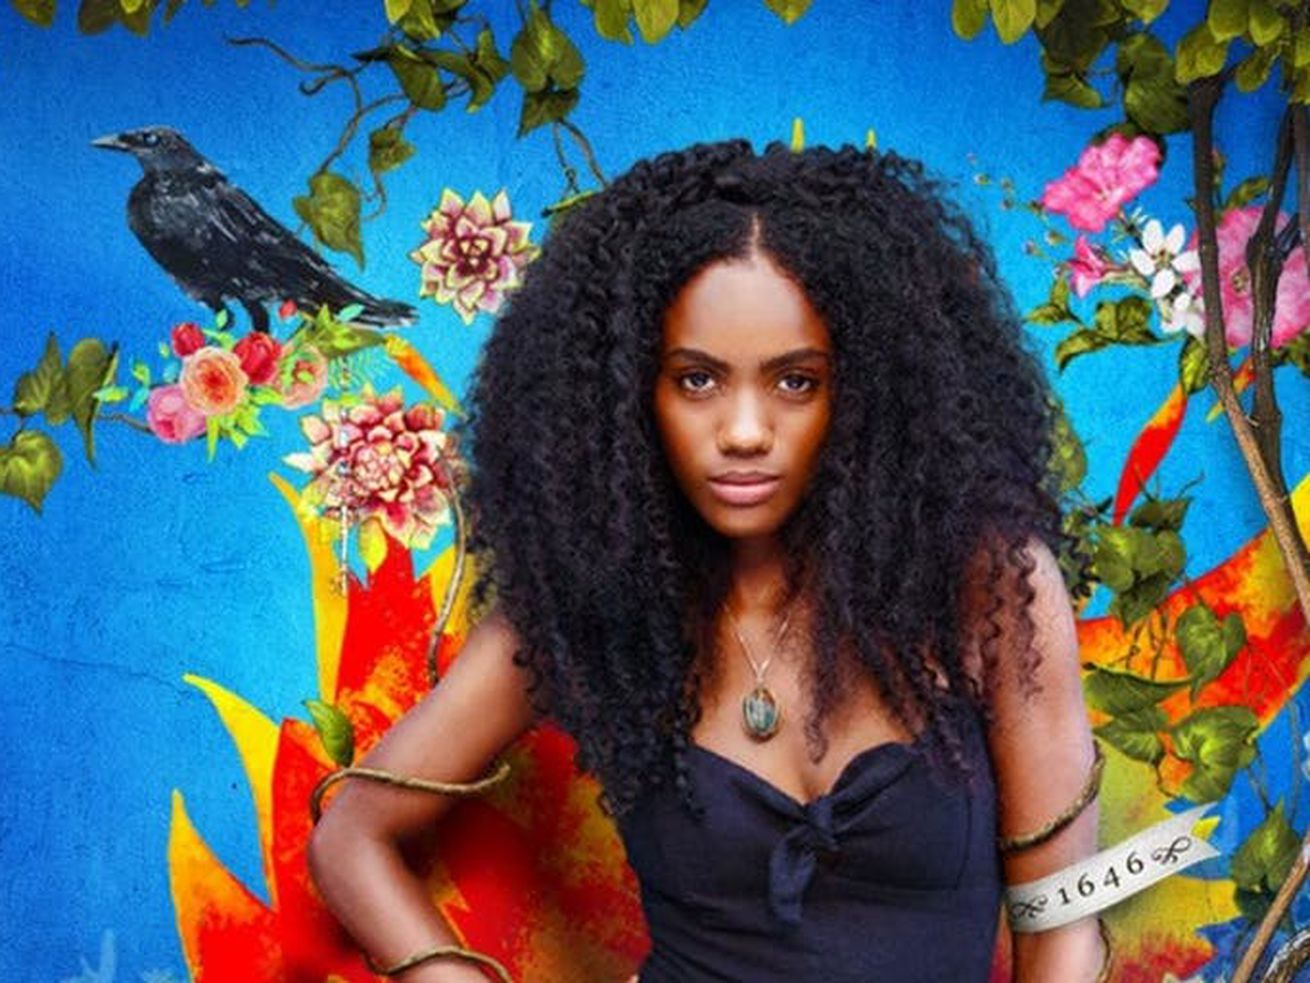 <em>Siempre Bruja</em> stars Angely Gaviria as Carmen Eguiluz, a powerful Afro-Colombian witch.